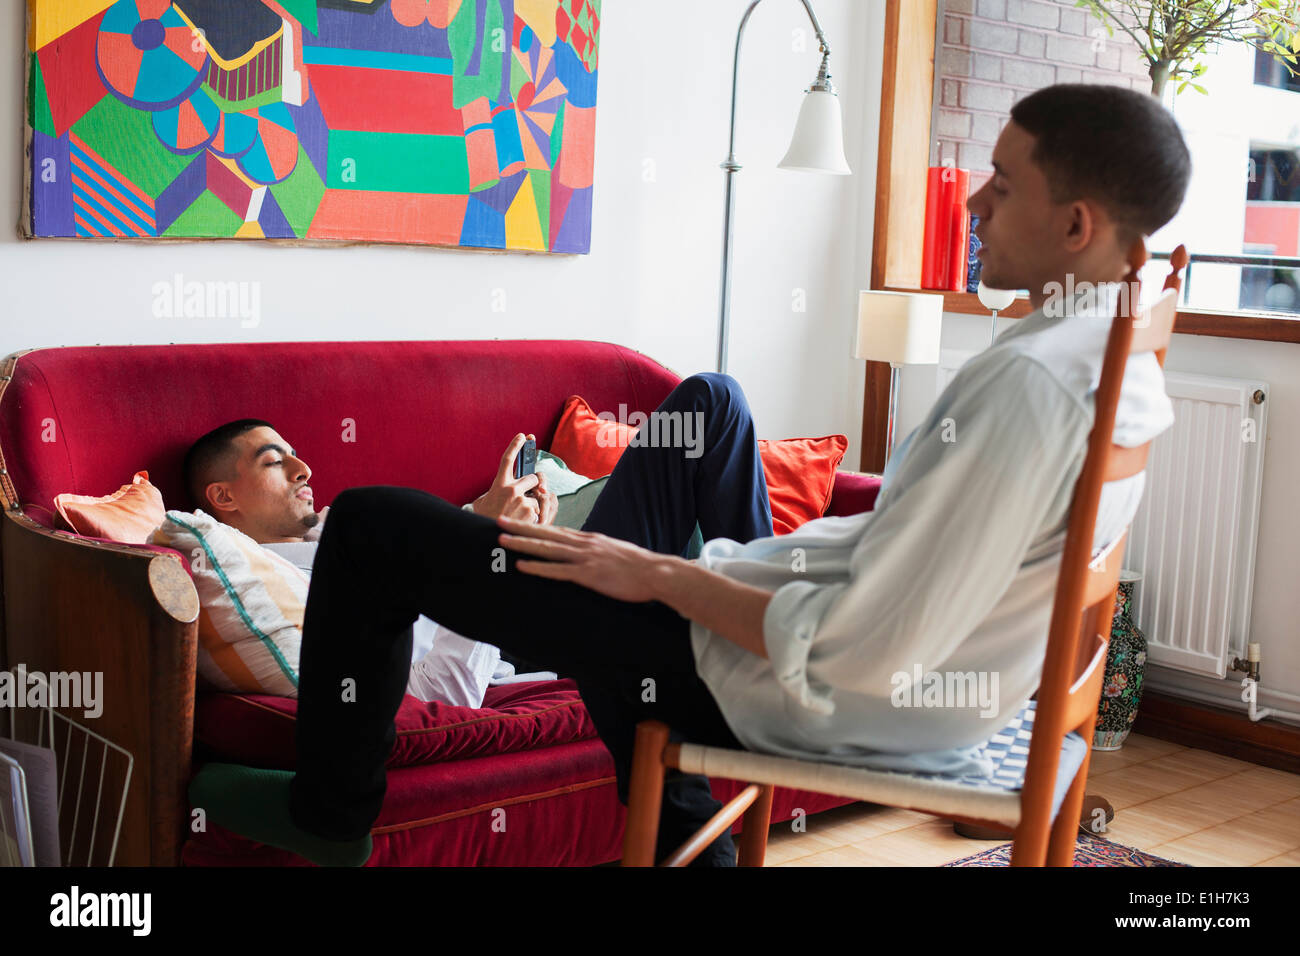 Les jeunes hommes relaxing in living room Photo Stock